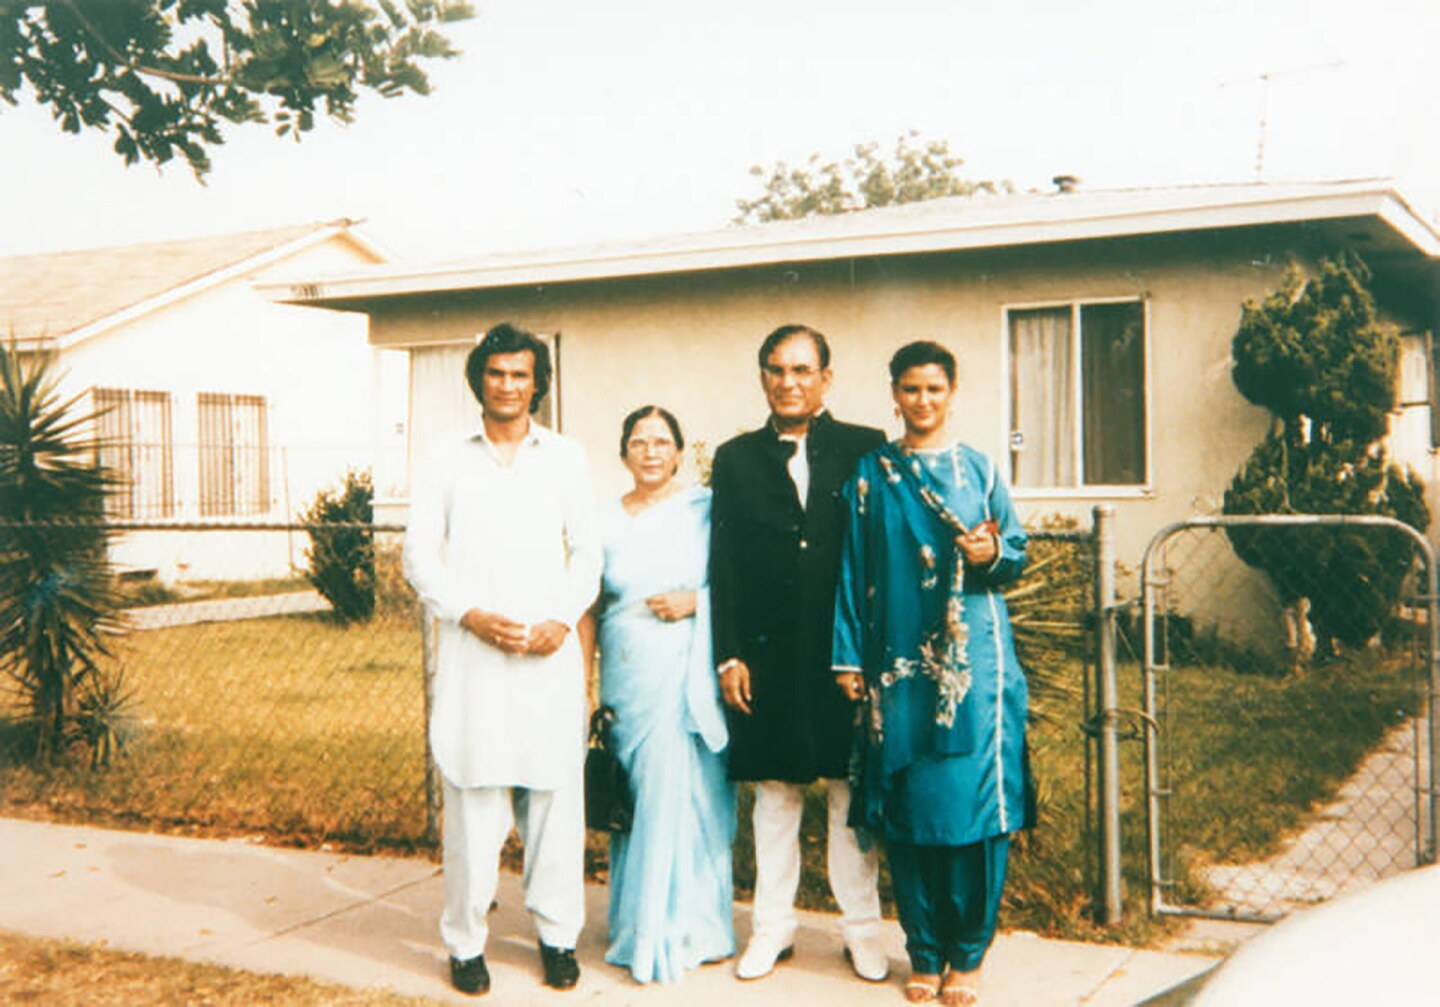 Syed and Qaiser with their children Qamar and Faozia in front of a home in Los Angeles.   Shades of L.A. Collection / LAPL